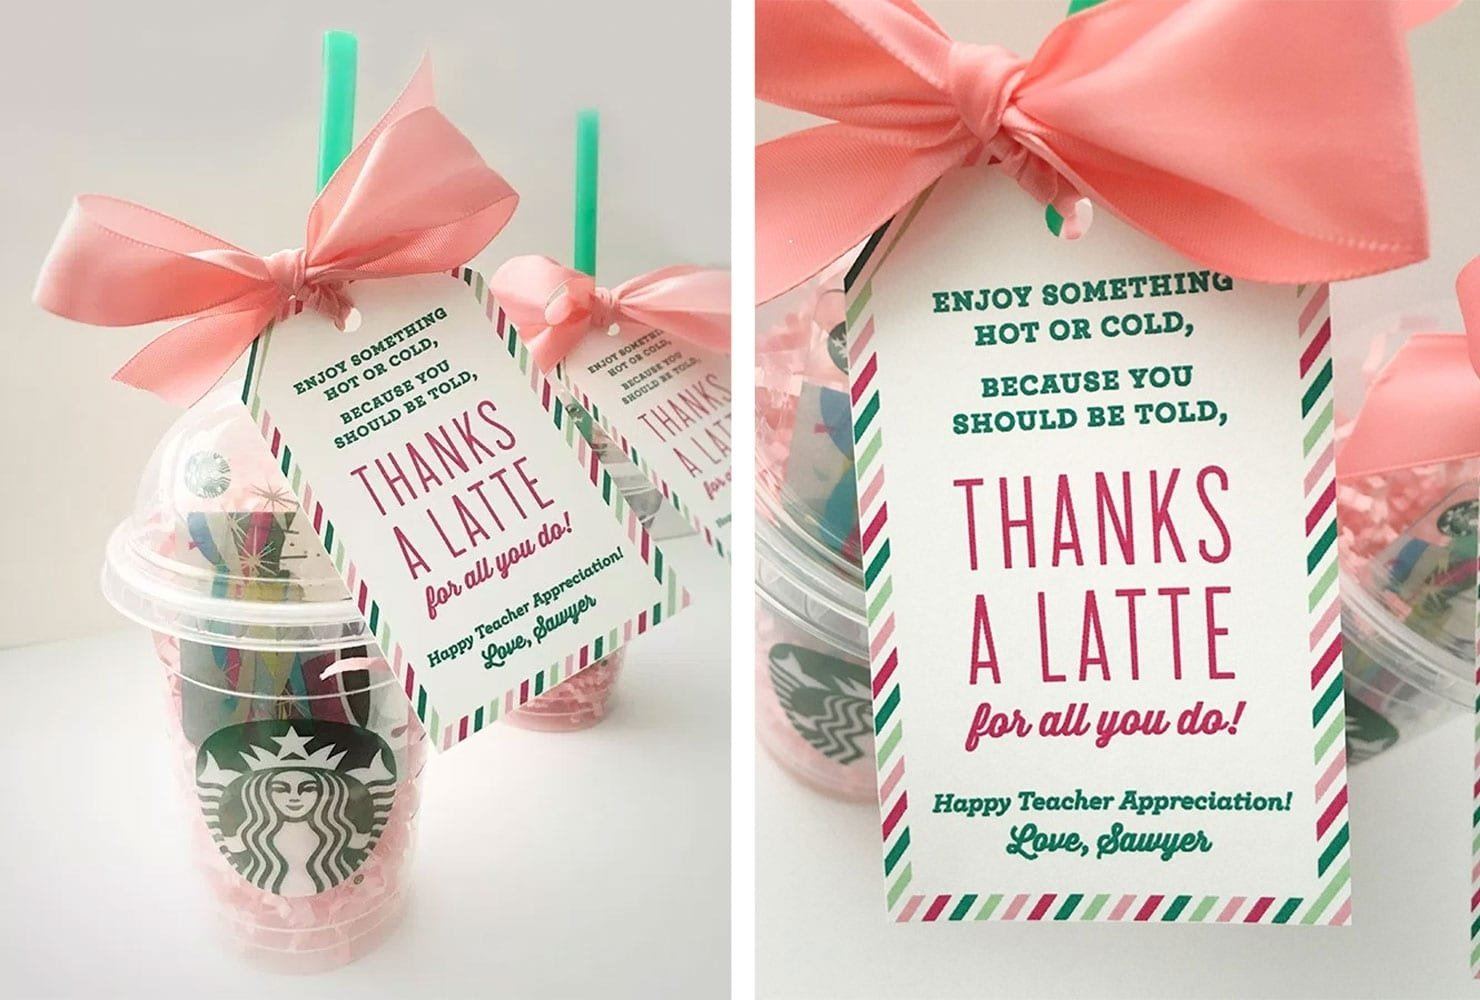 10 Awesome Teachers Appreciation Day Gift Ideas 55 teacher appreciation week gift ideas to say thanks shutterfly 2021